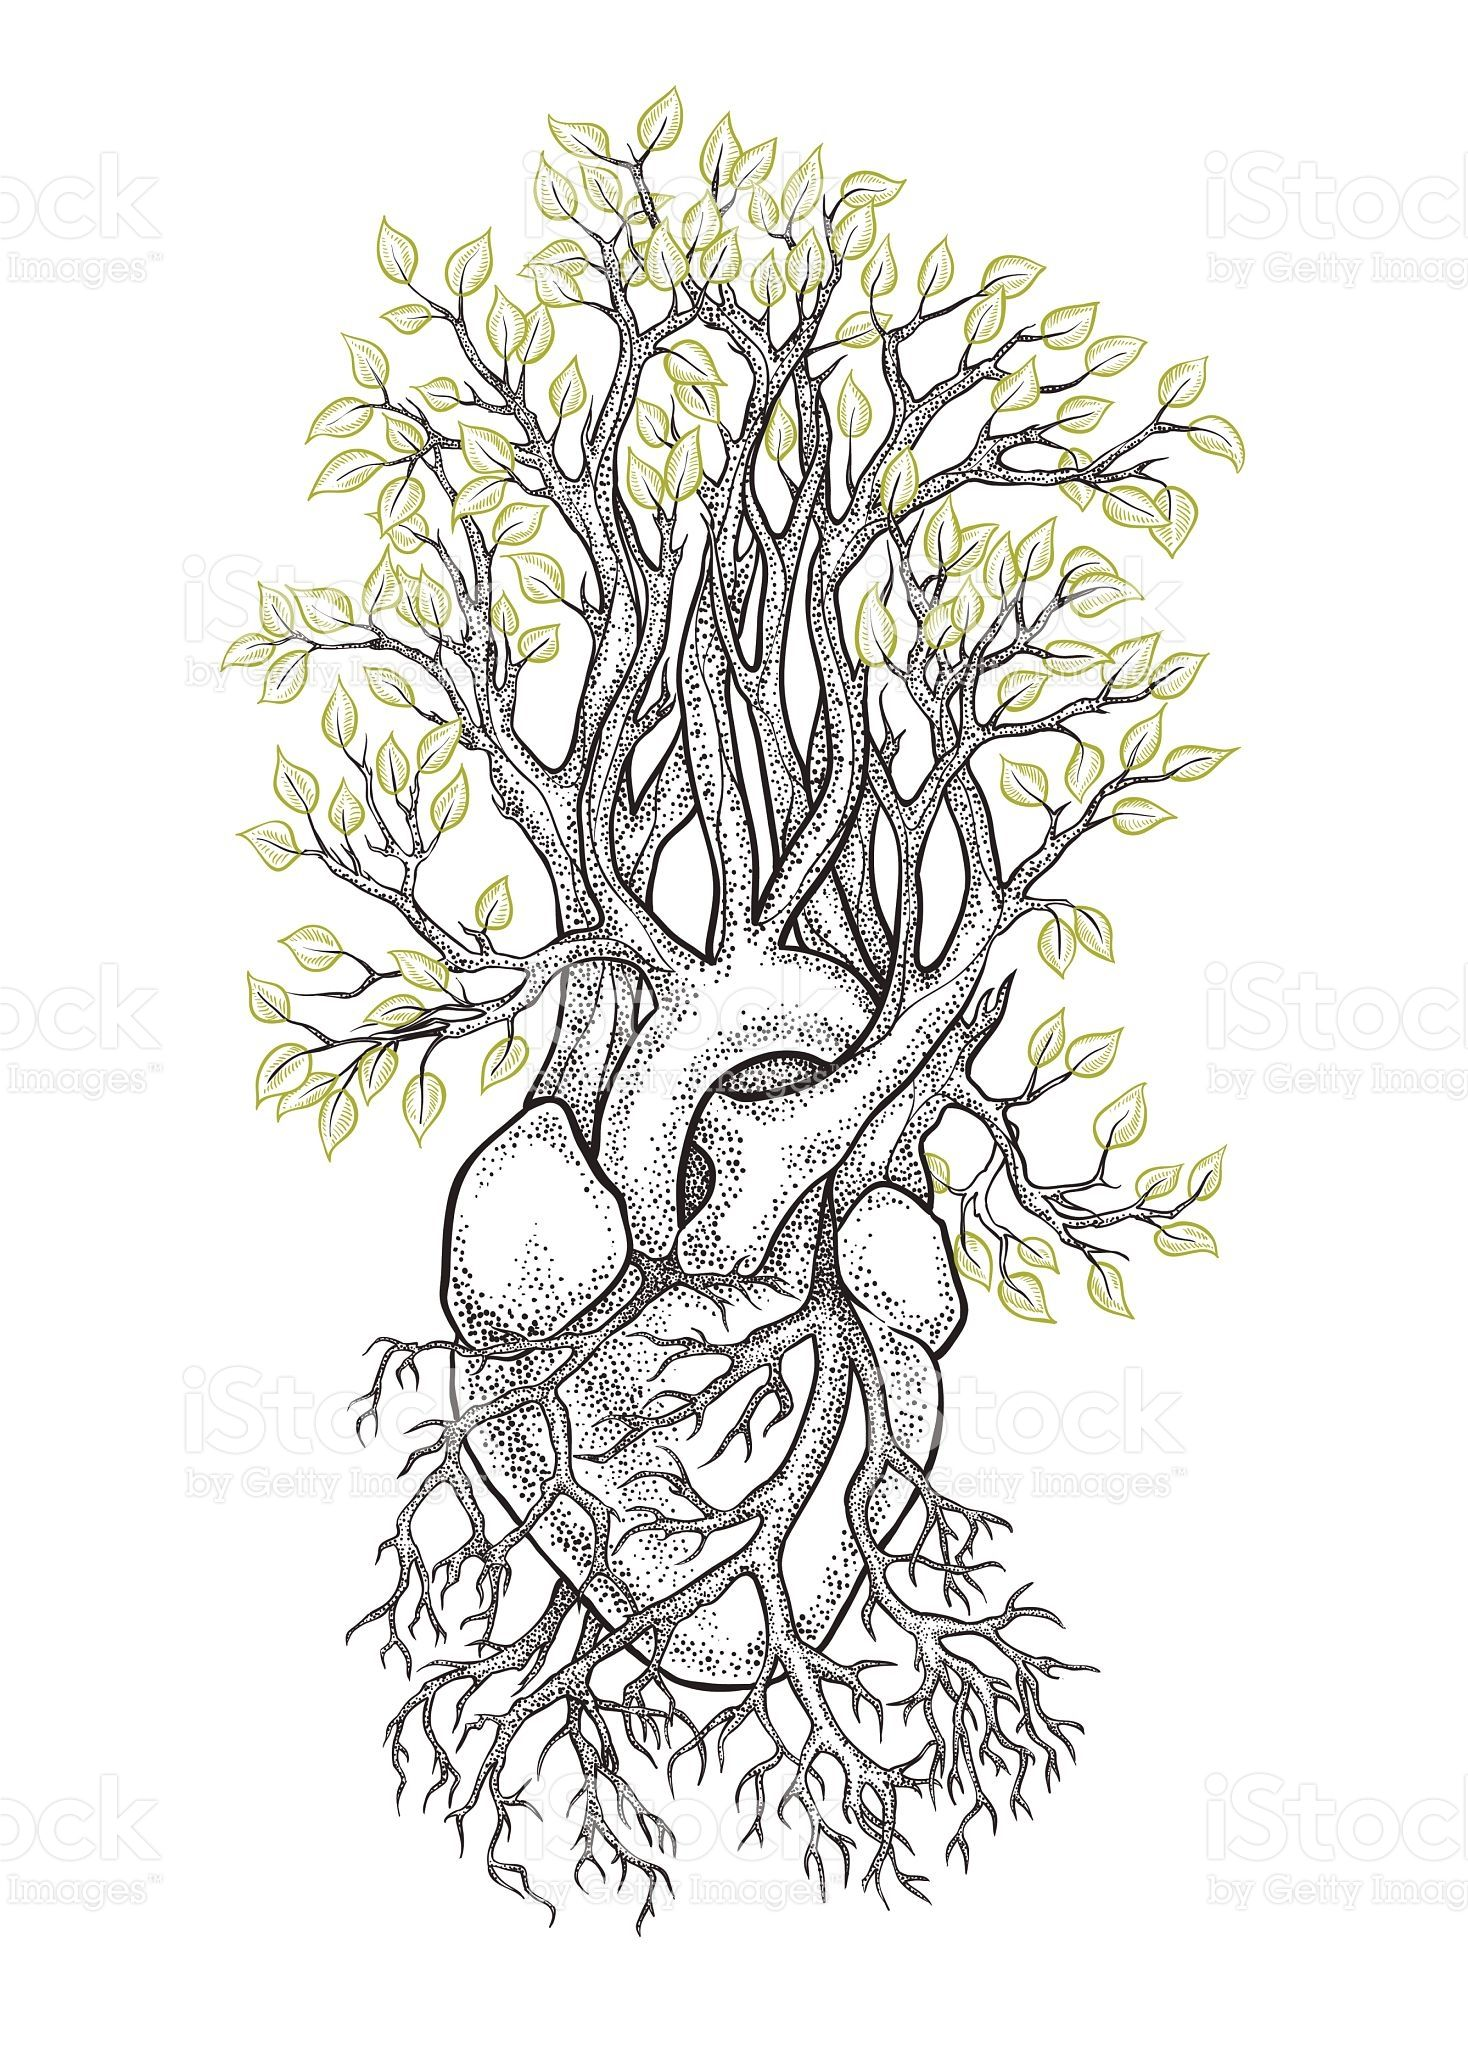 Human anatomical heart with veins like roots, from which grows a ...